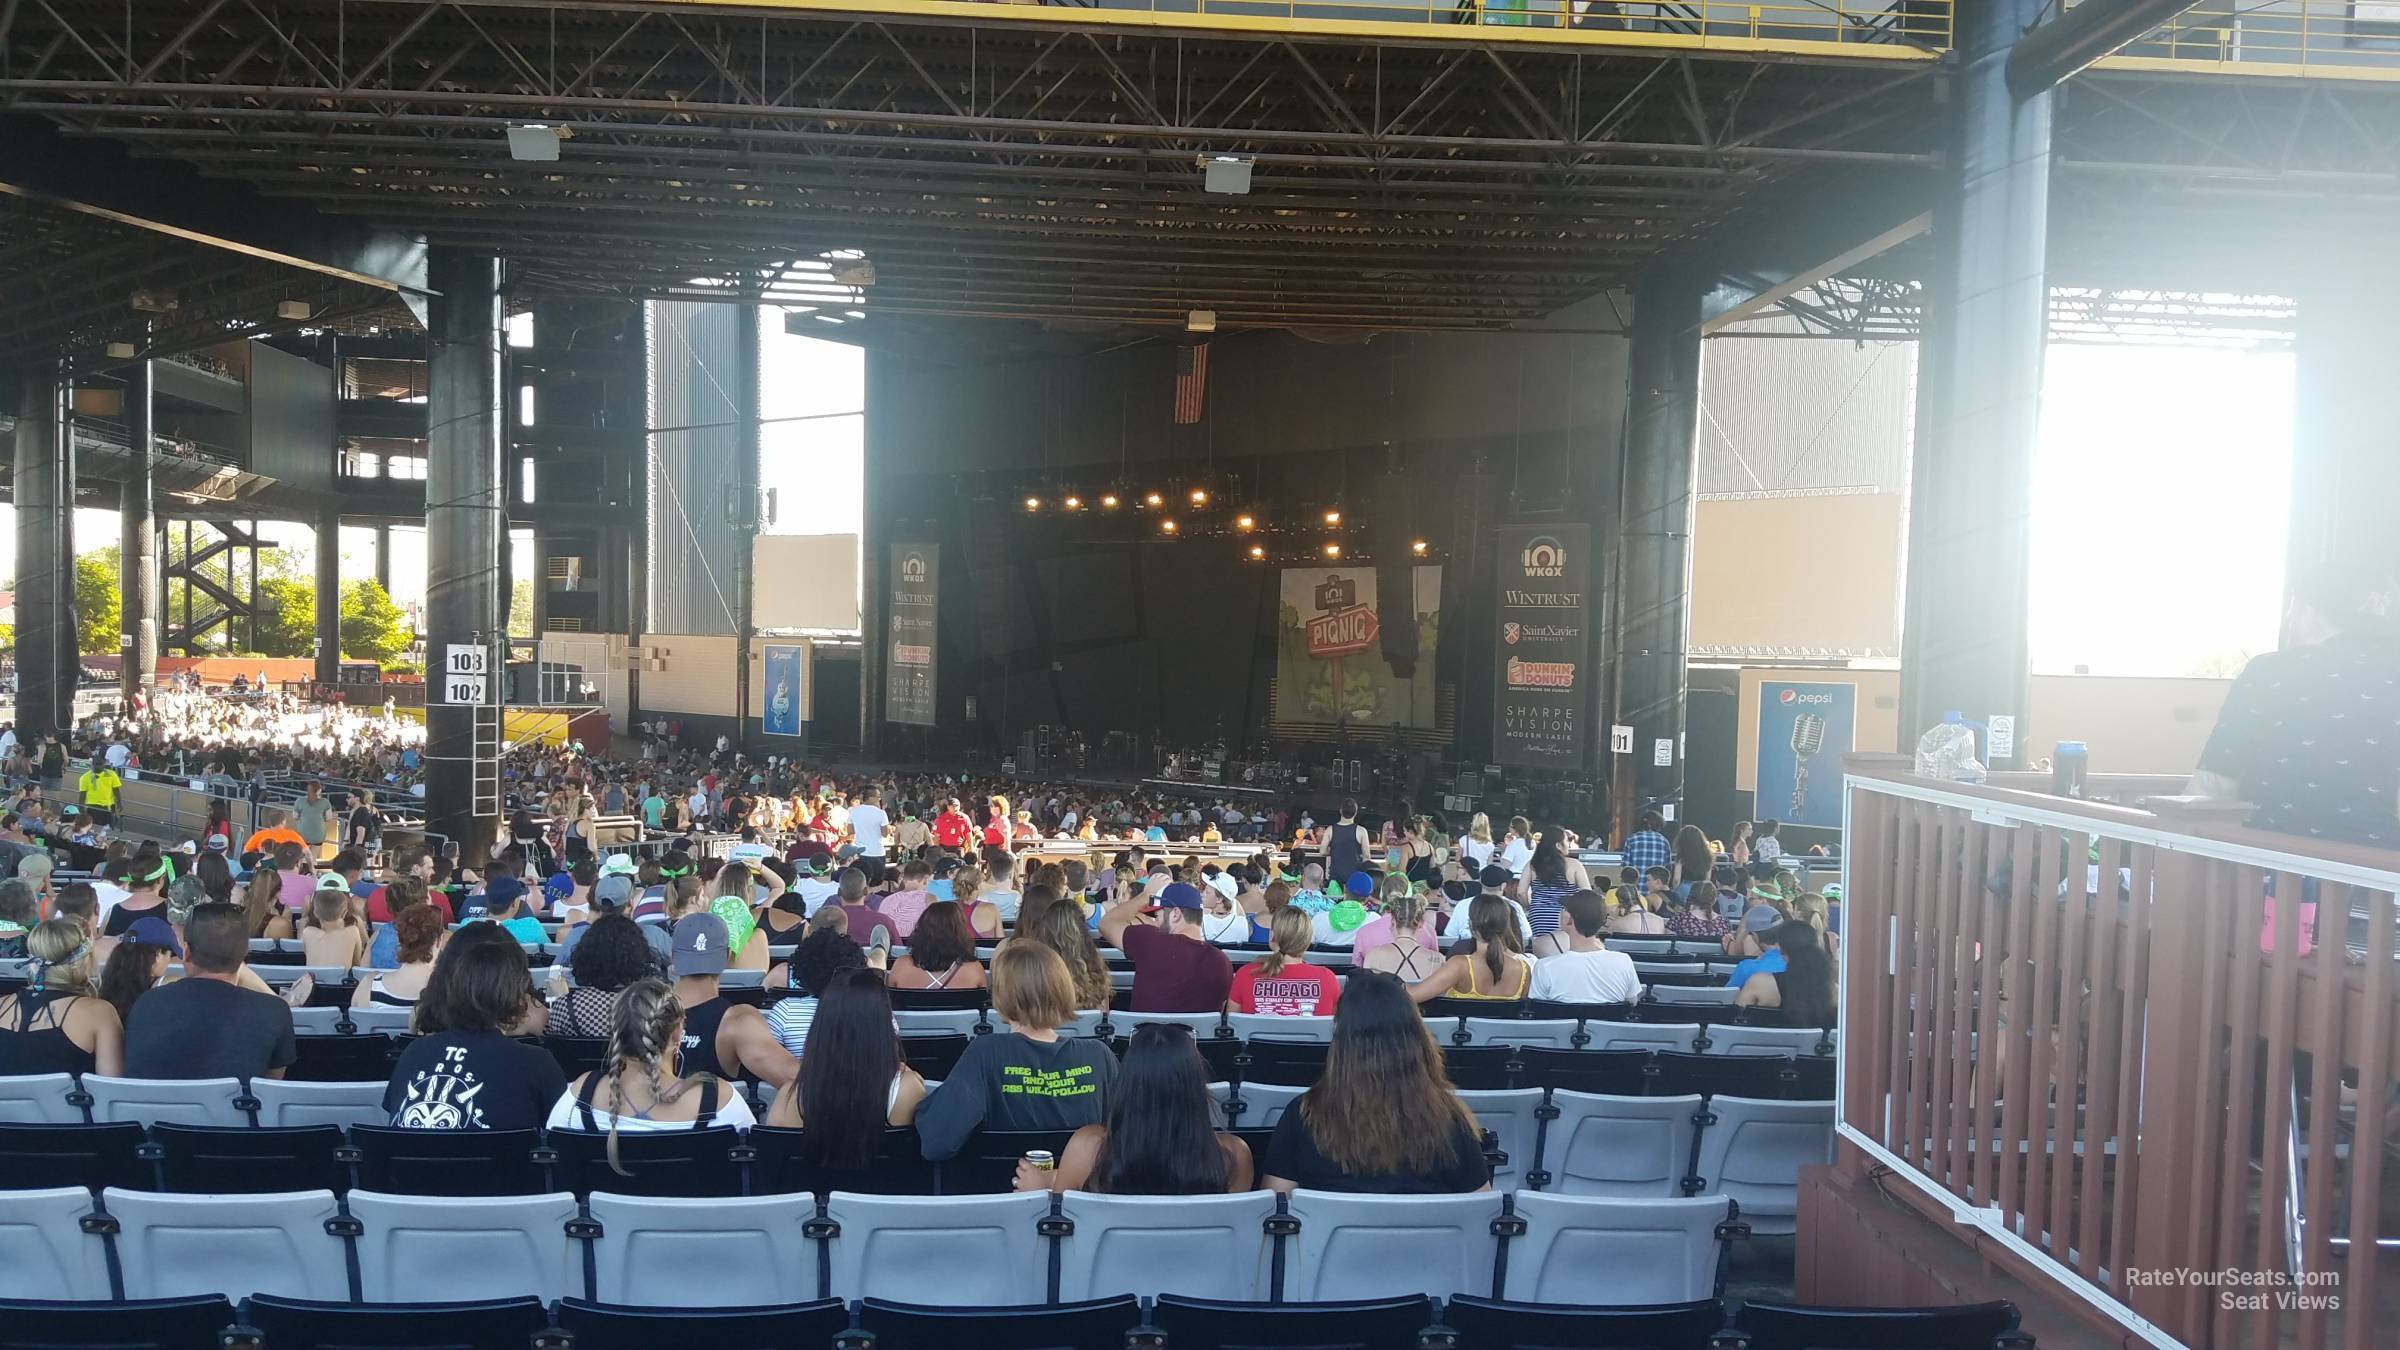 Hollywood Amphitheatre Tinley Park Il Section 203 Rateyourseats